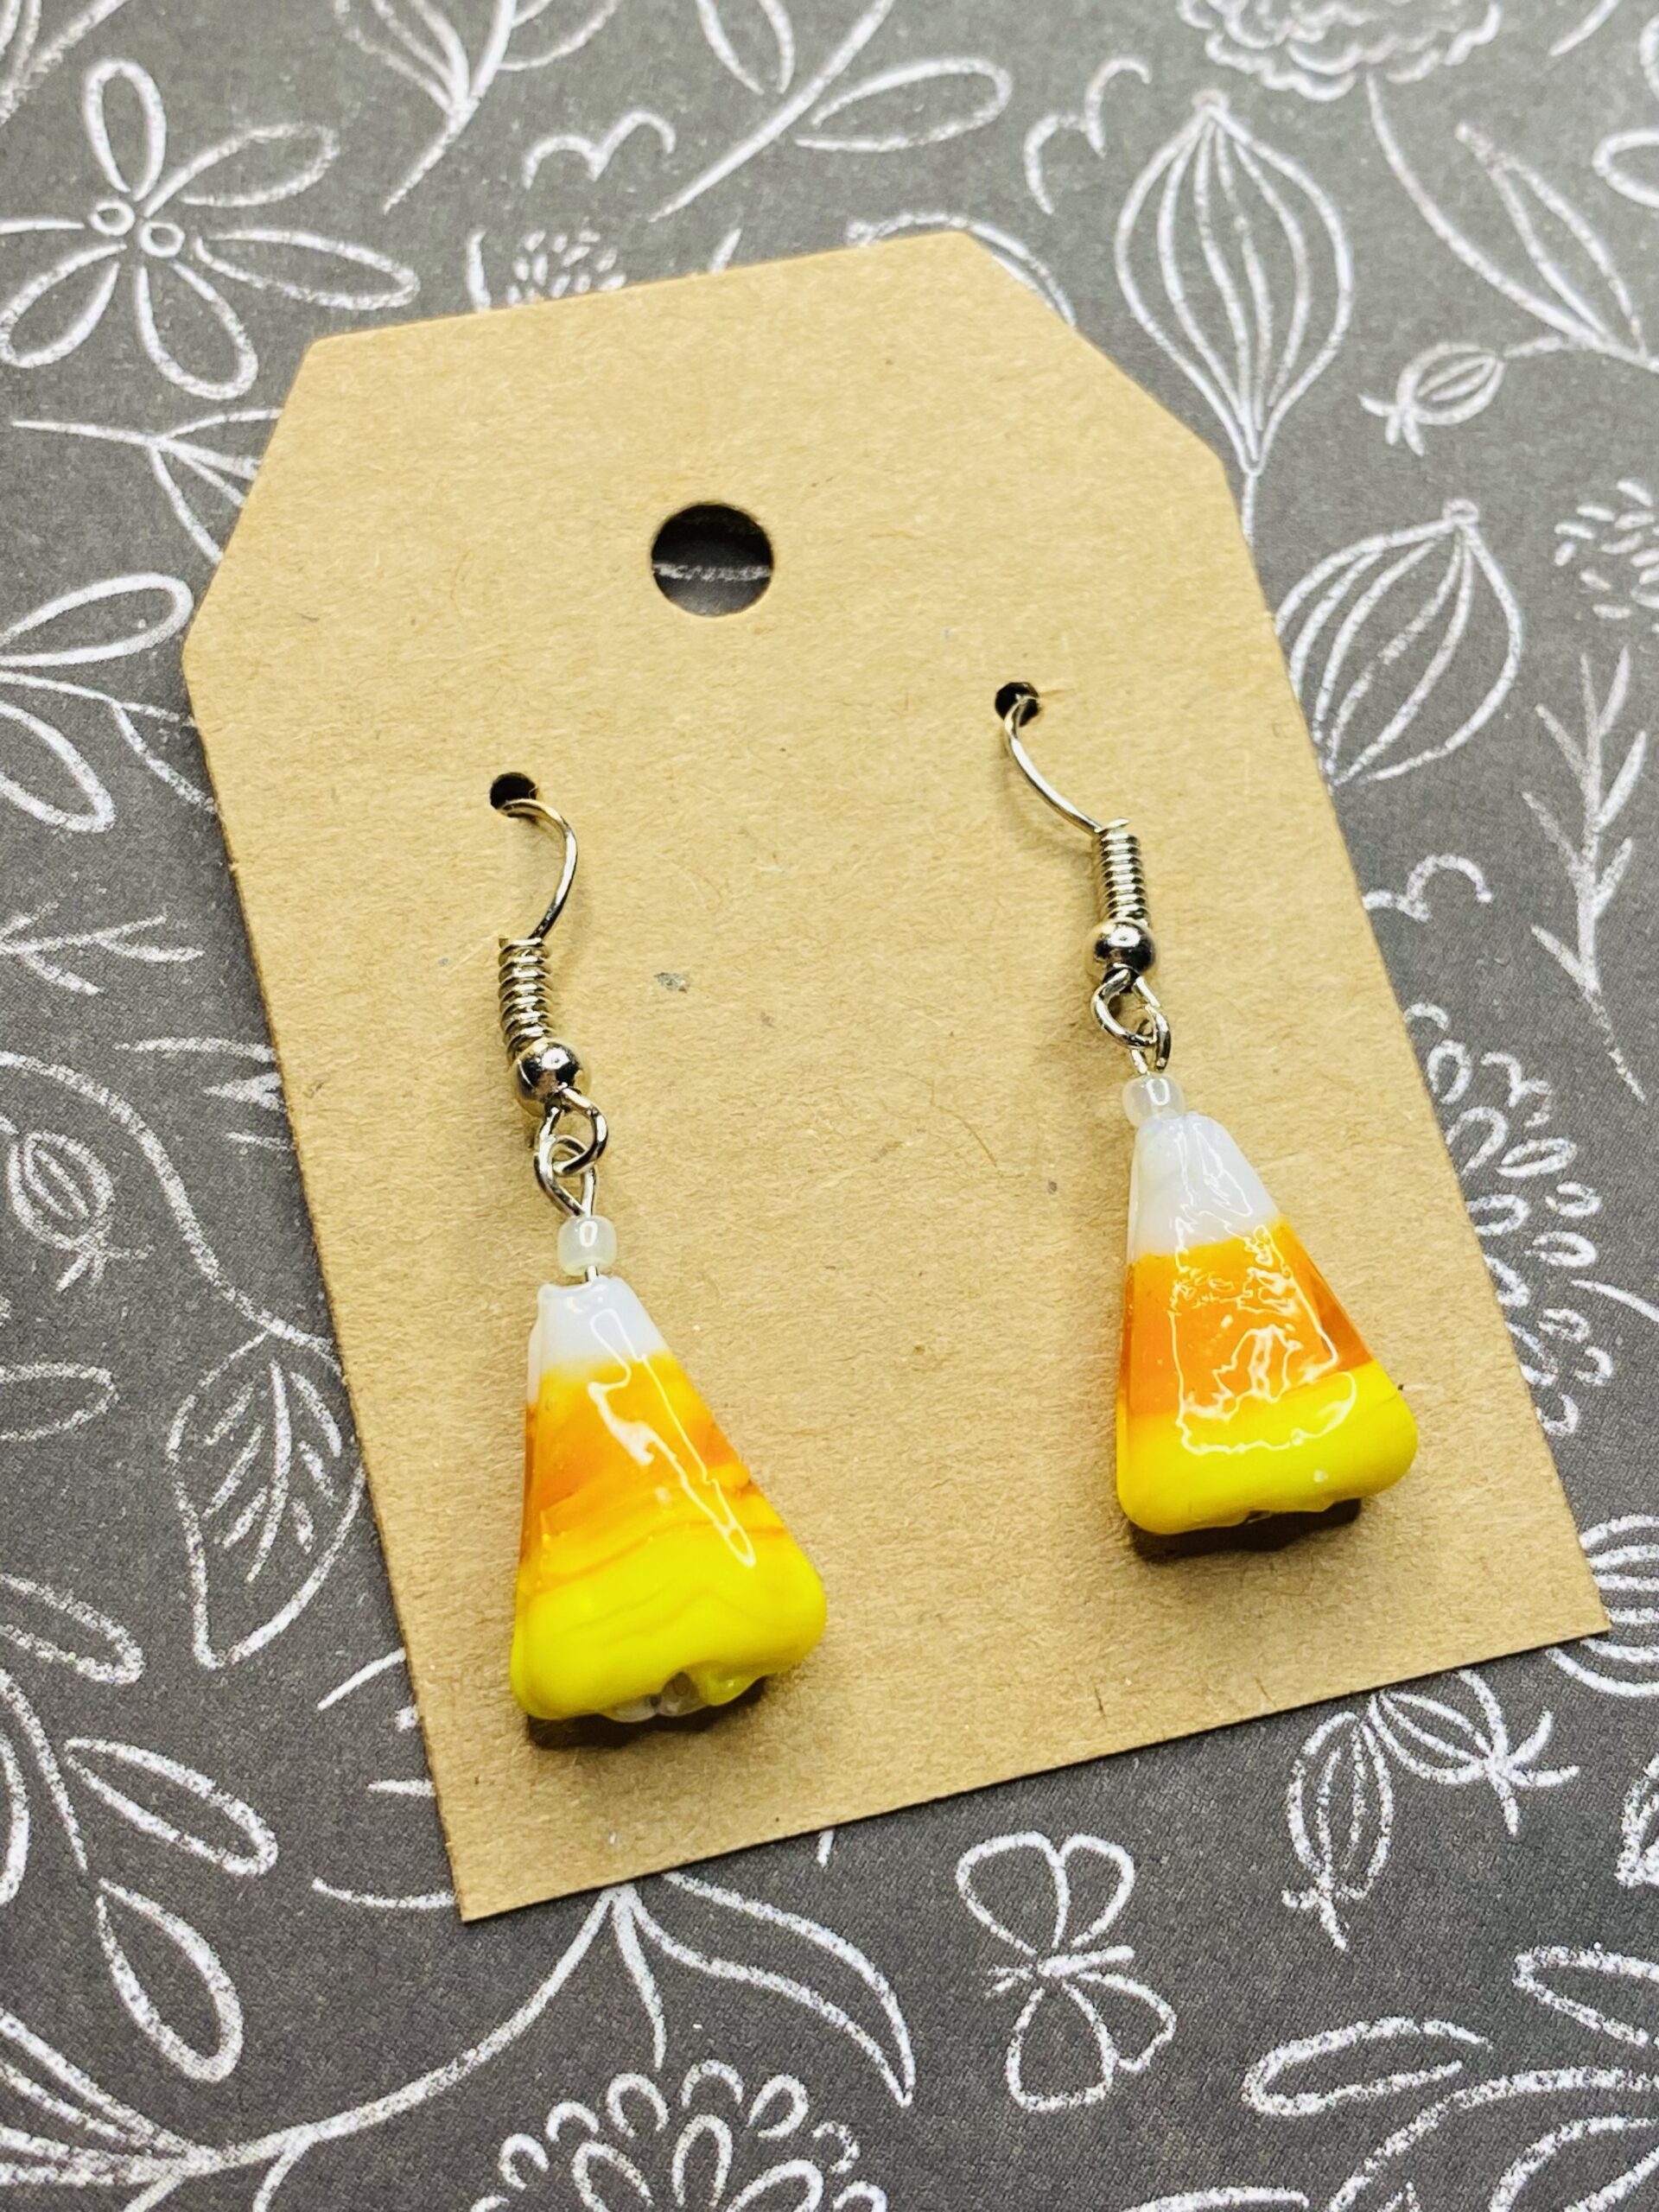 Read more about the article New Fall Earrings in Our Shop!